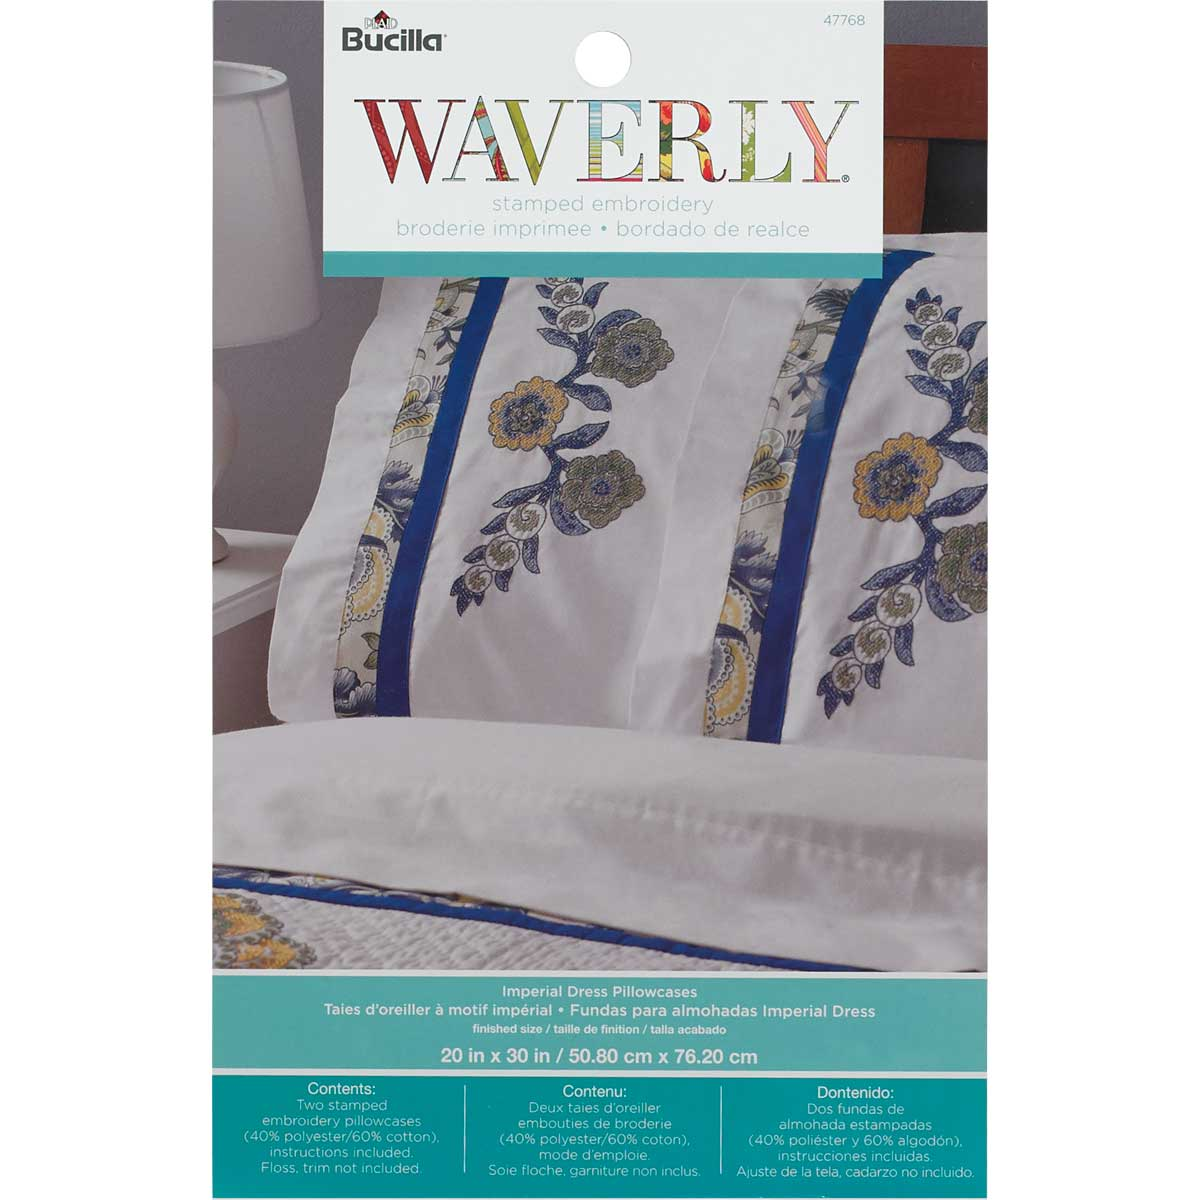 Bucilla Waverly Imperial Dress Collection Stamped Pillowcase Pair - 47768